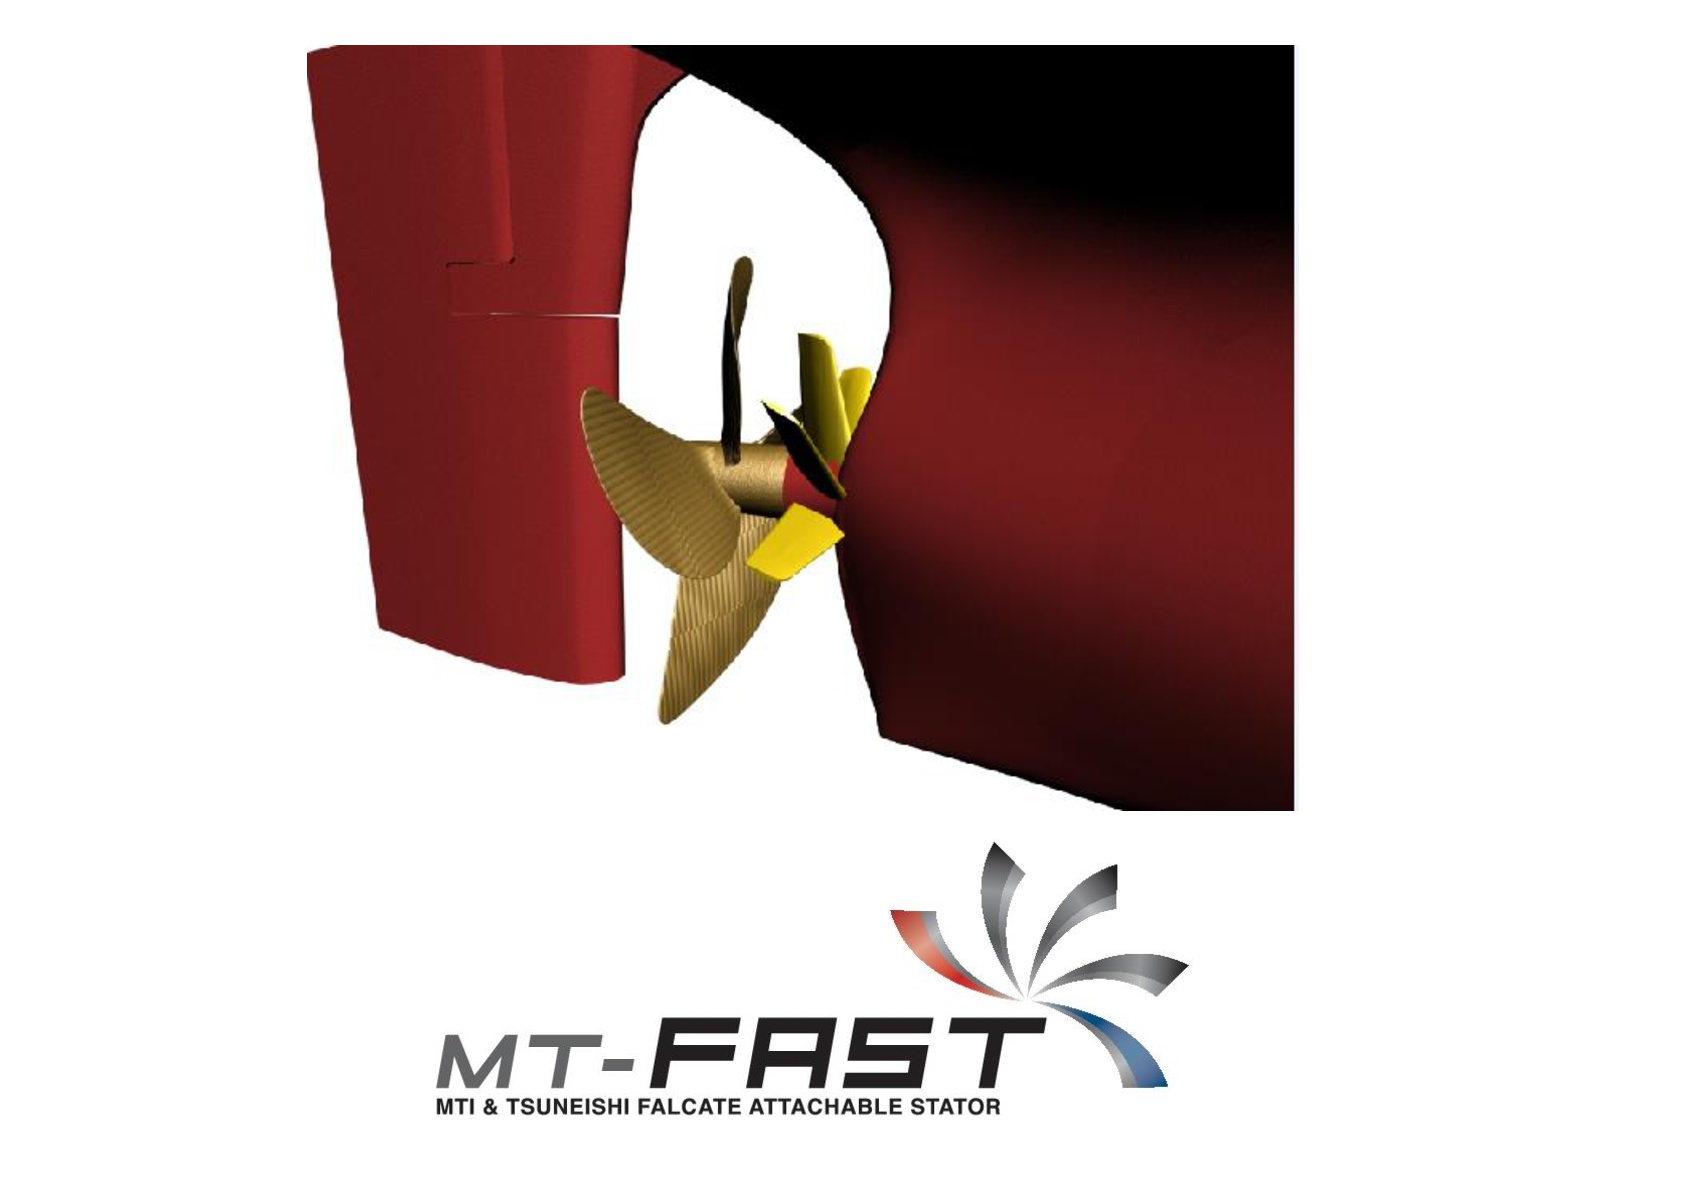 Installations of MT-FAST, the energy-saving hull fitting, pass the 500-ship mark